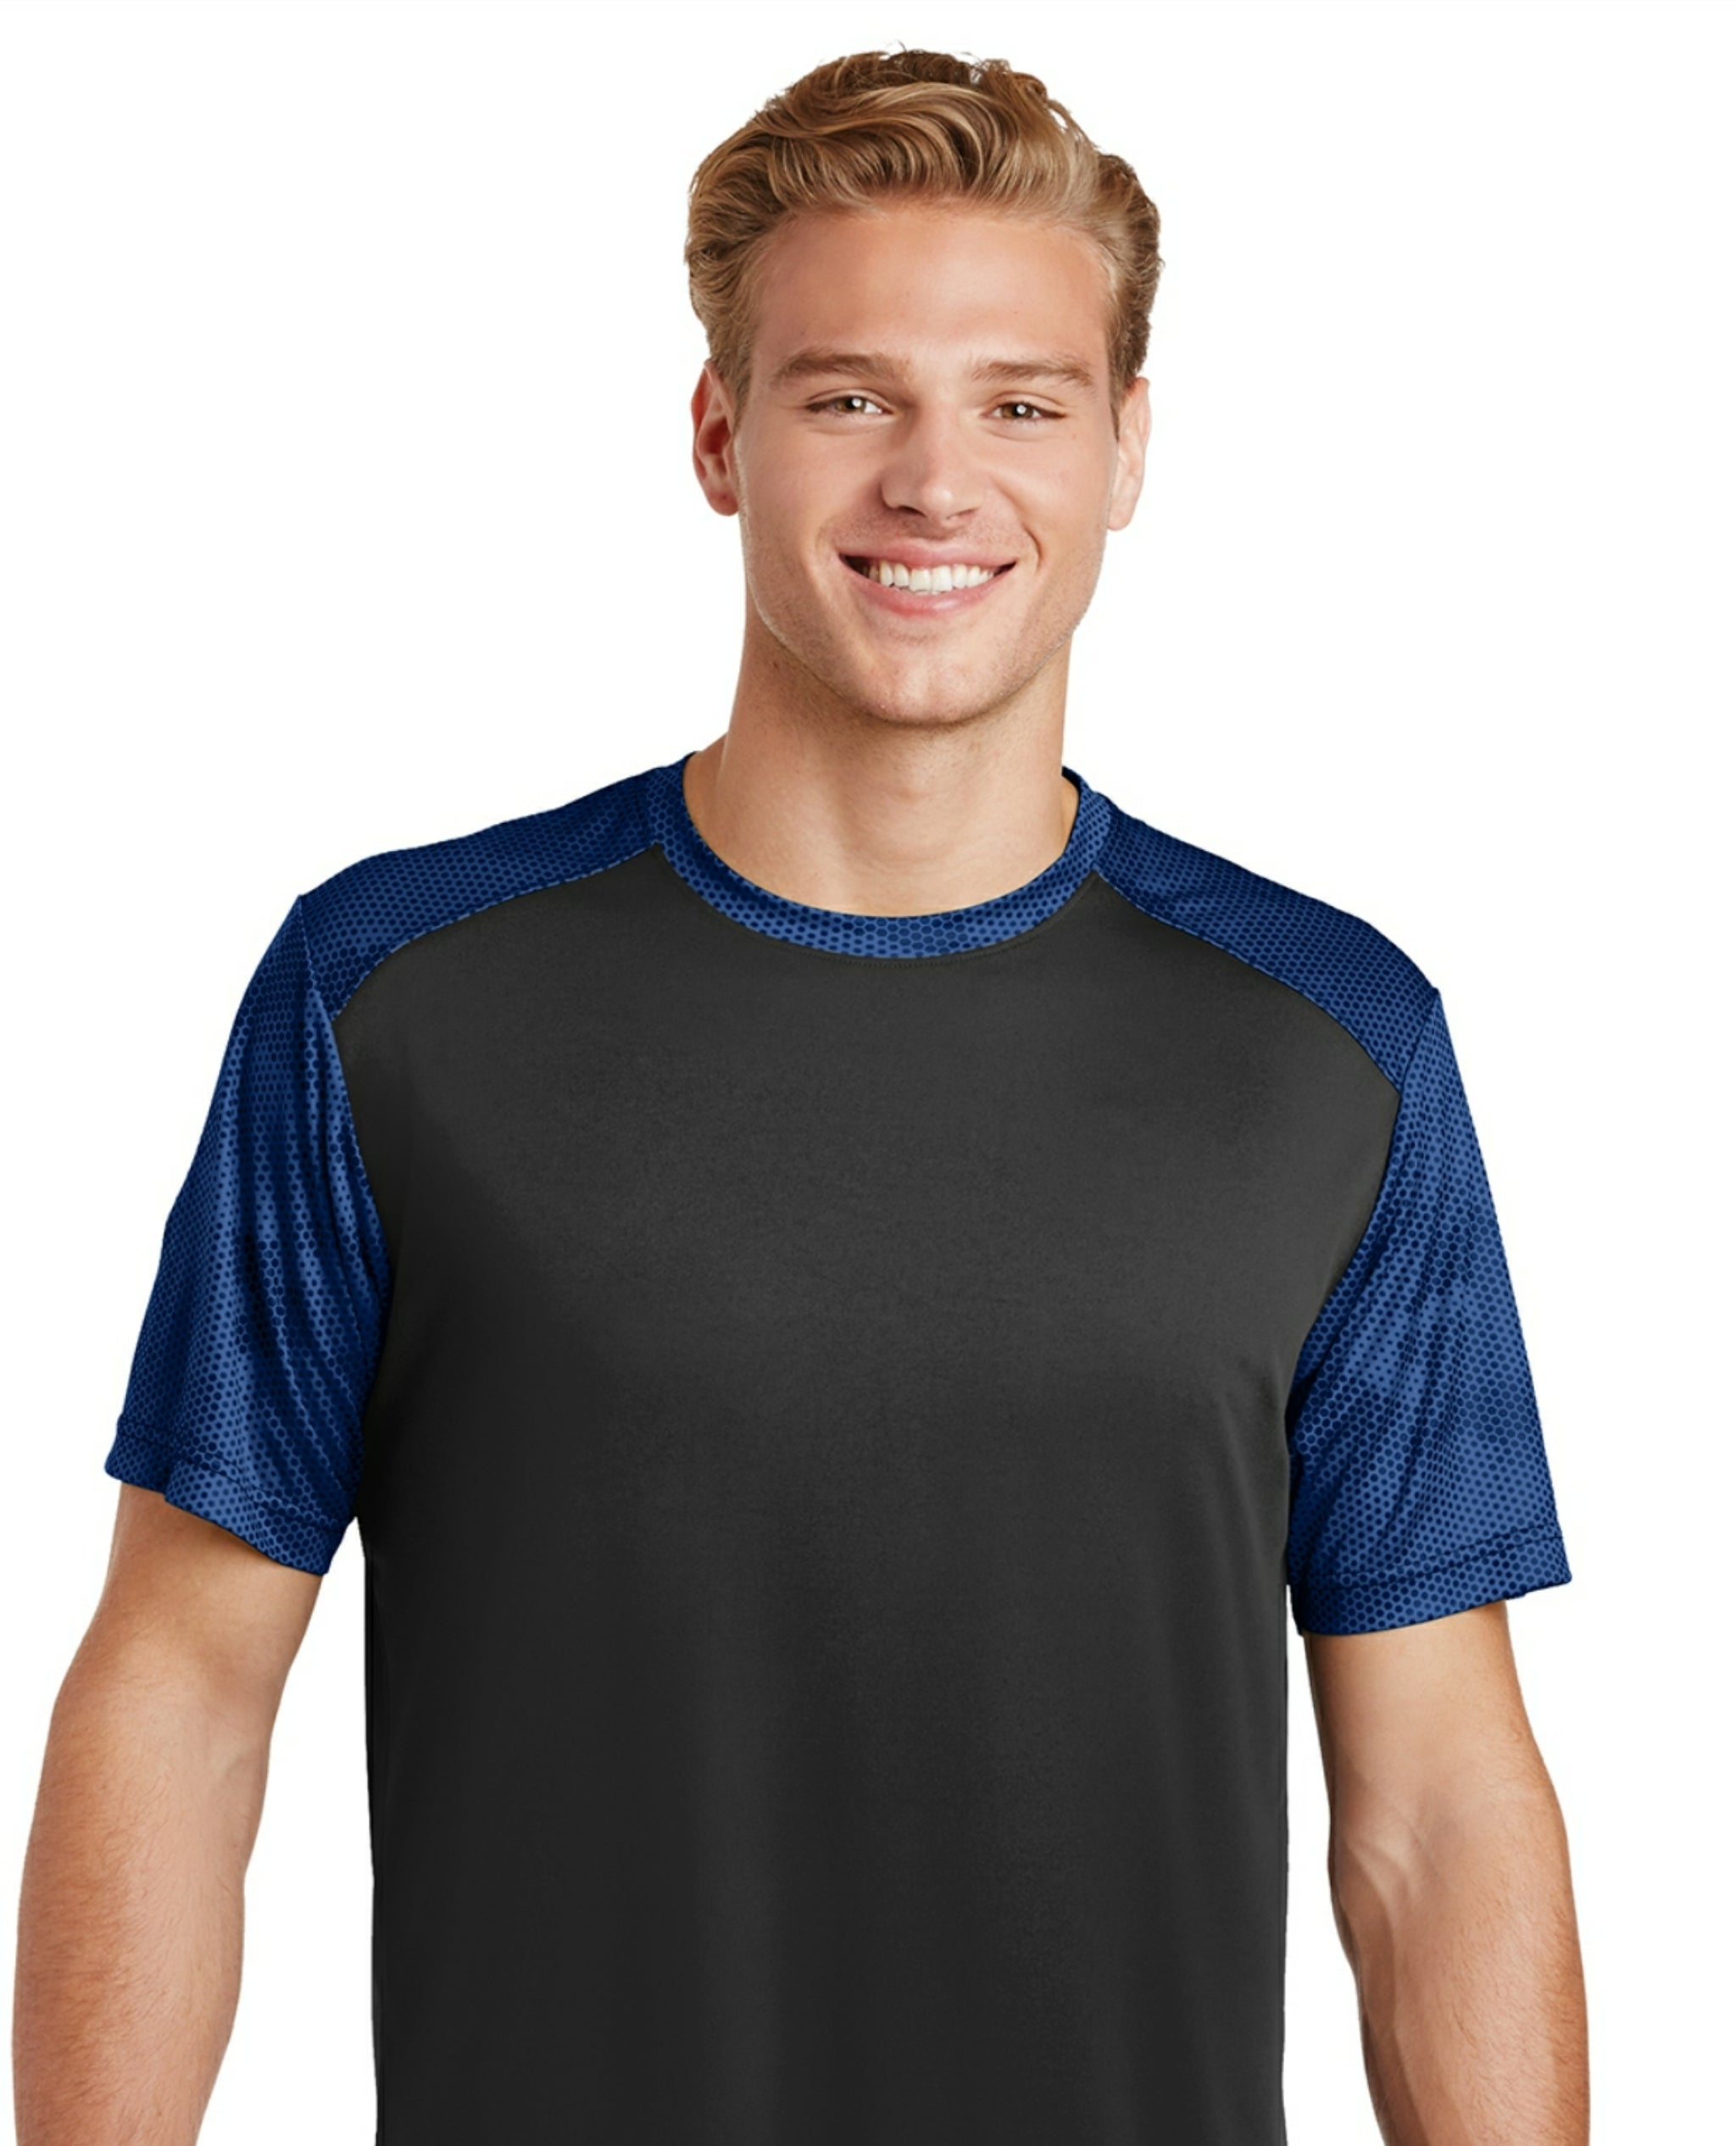 attached front panel camohex colorblock tee Black/Blue Camohex